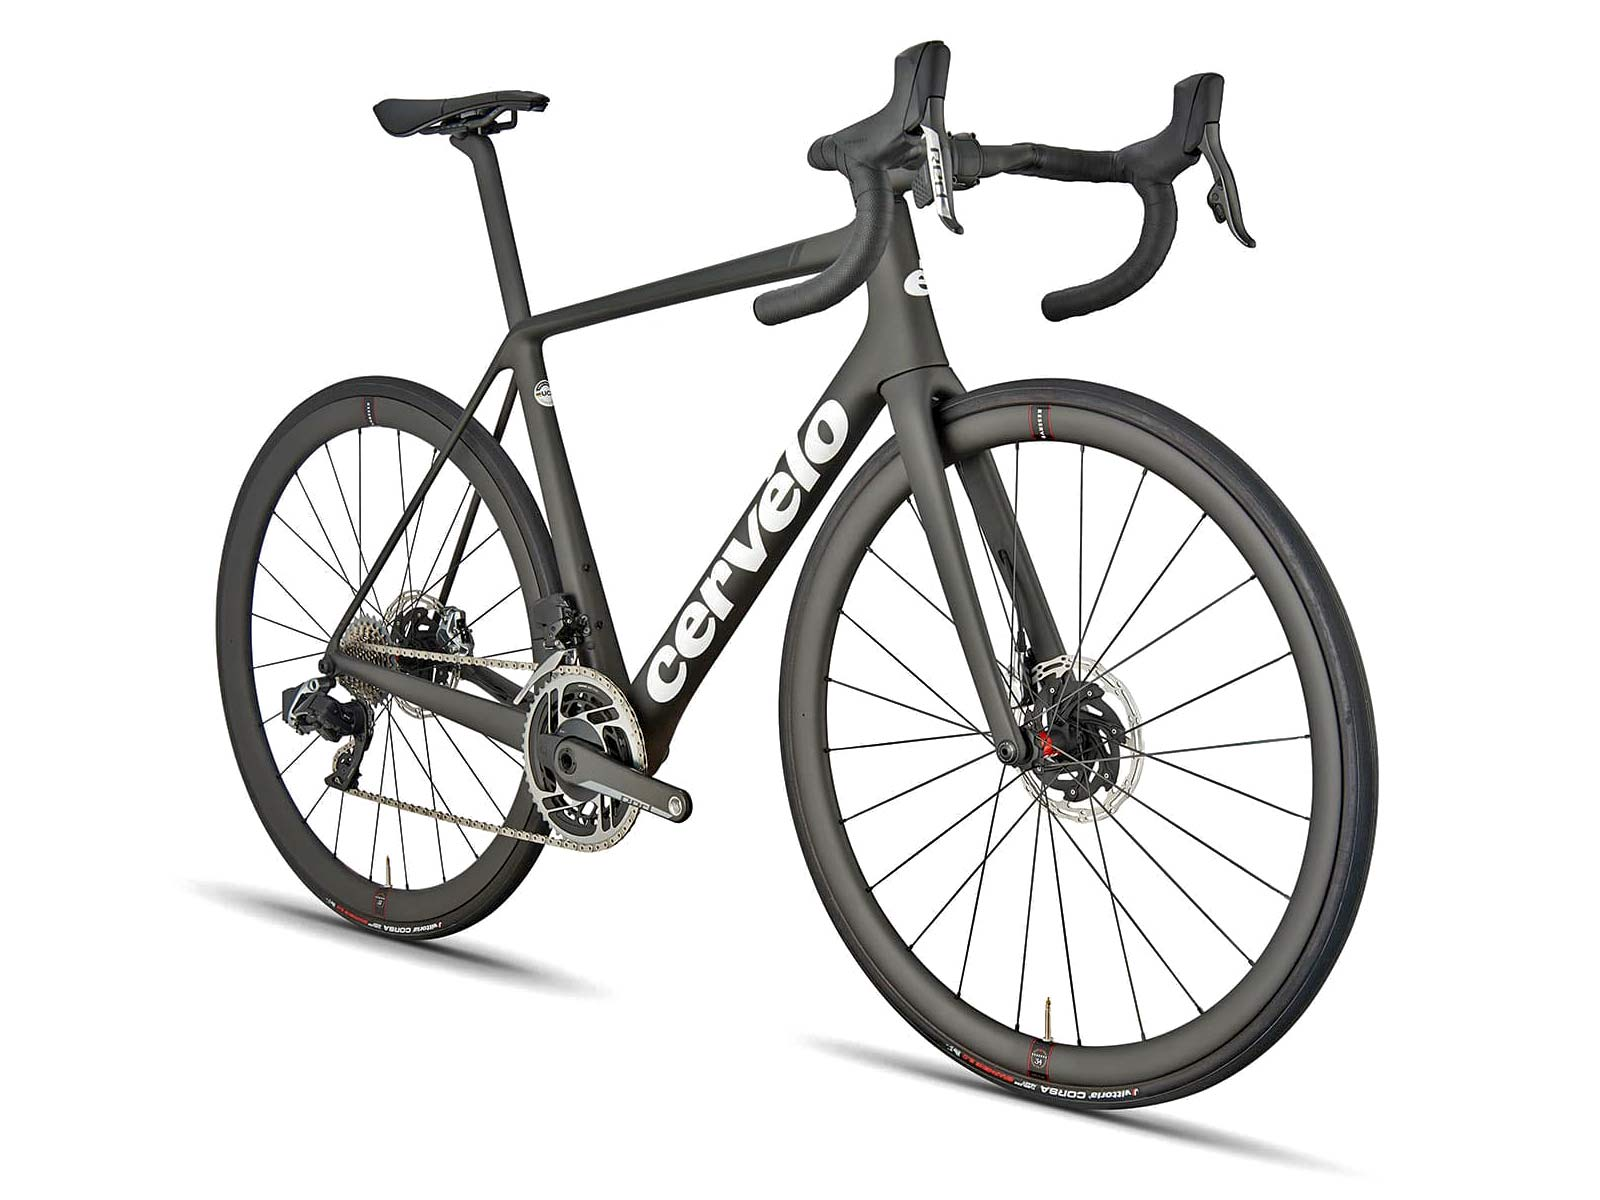 2022 Cervelo R5 Disc lightweight carbon all-rounder classic road bike,angled